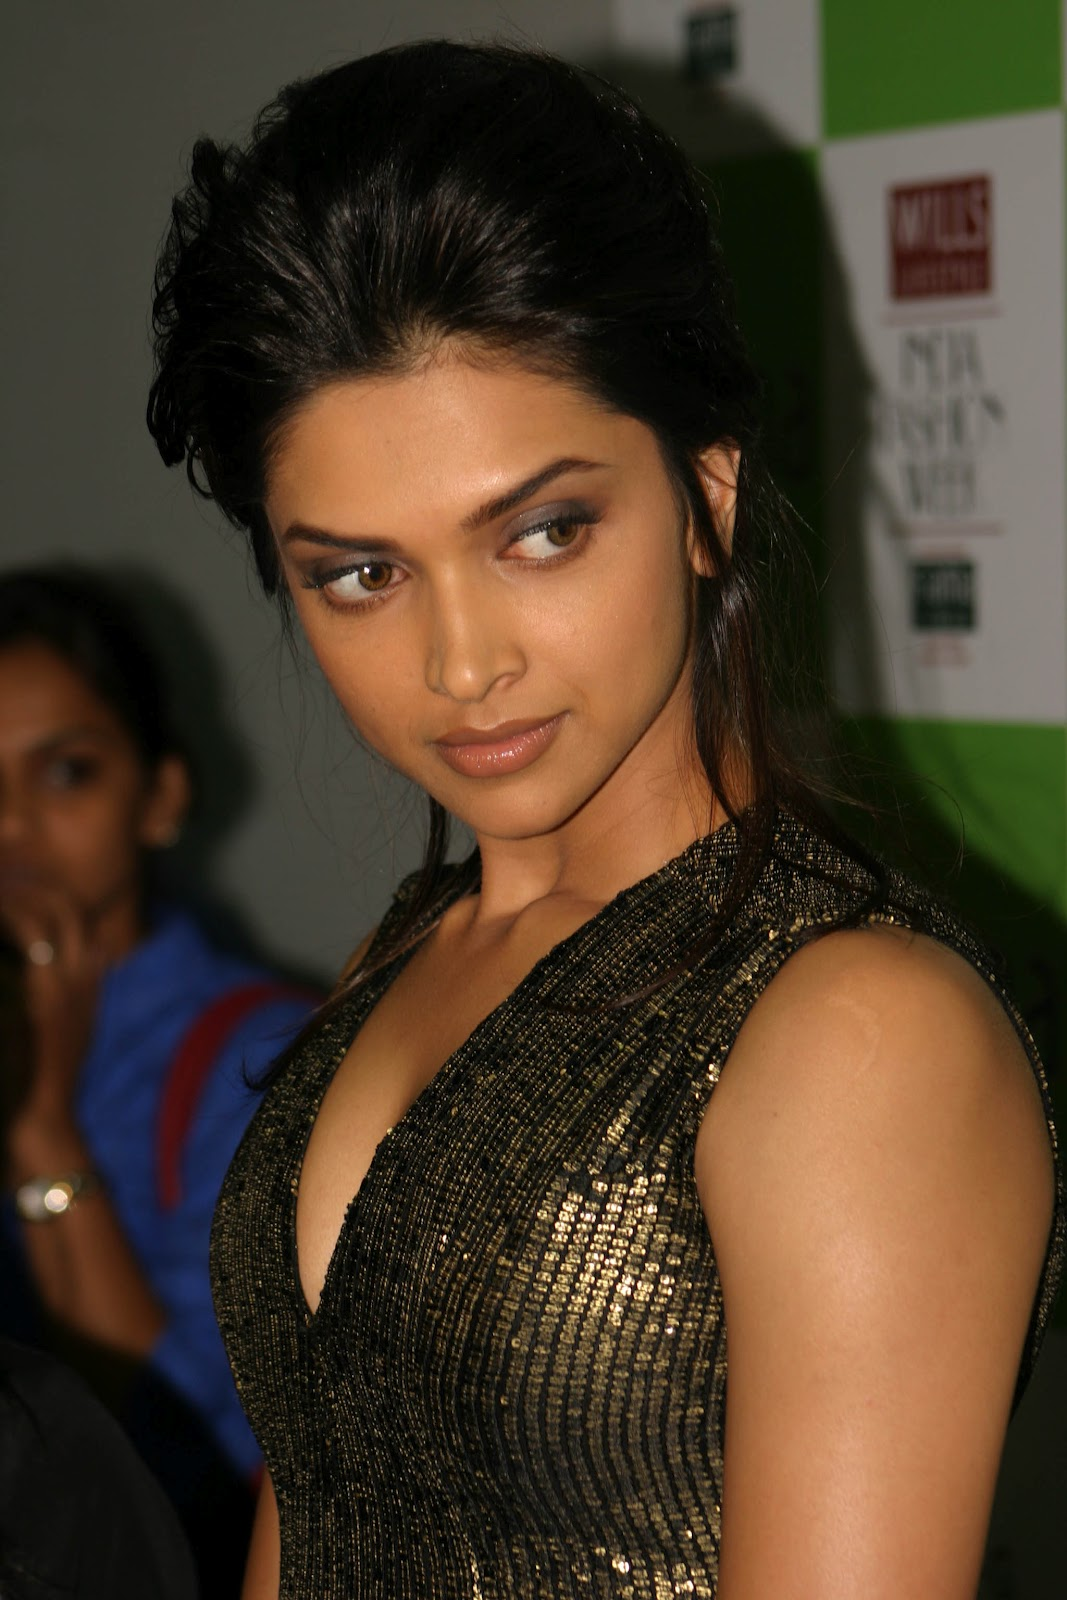 Deepika Padukone In Hot Photos Deepika Padukone In Hot Photos-5383